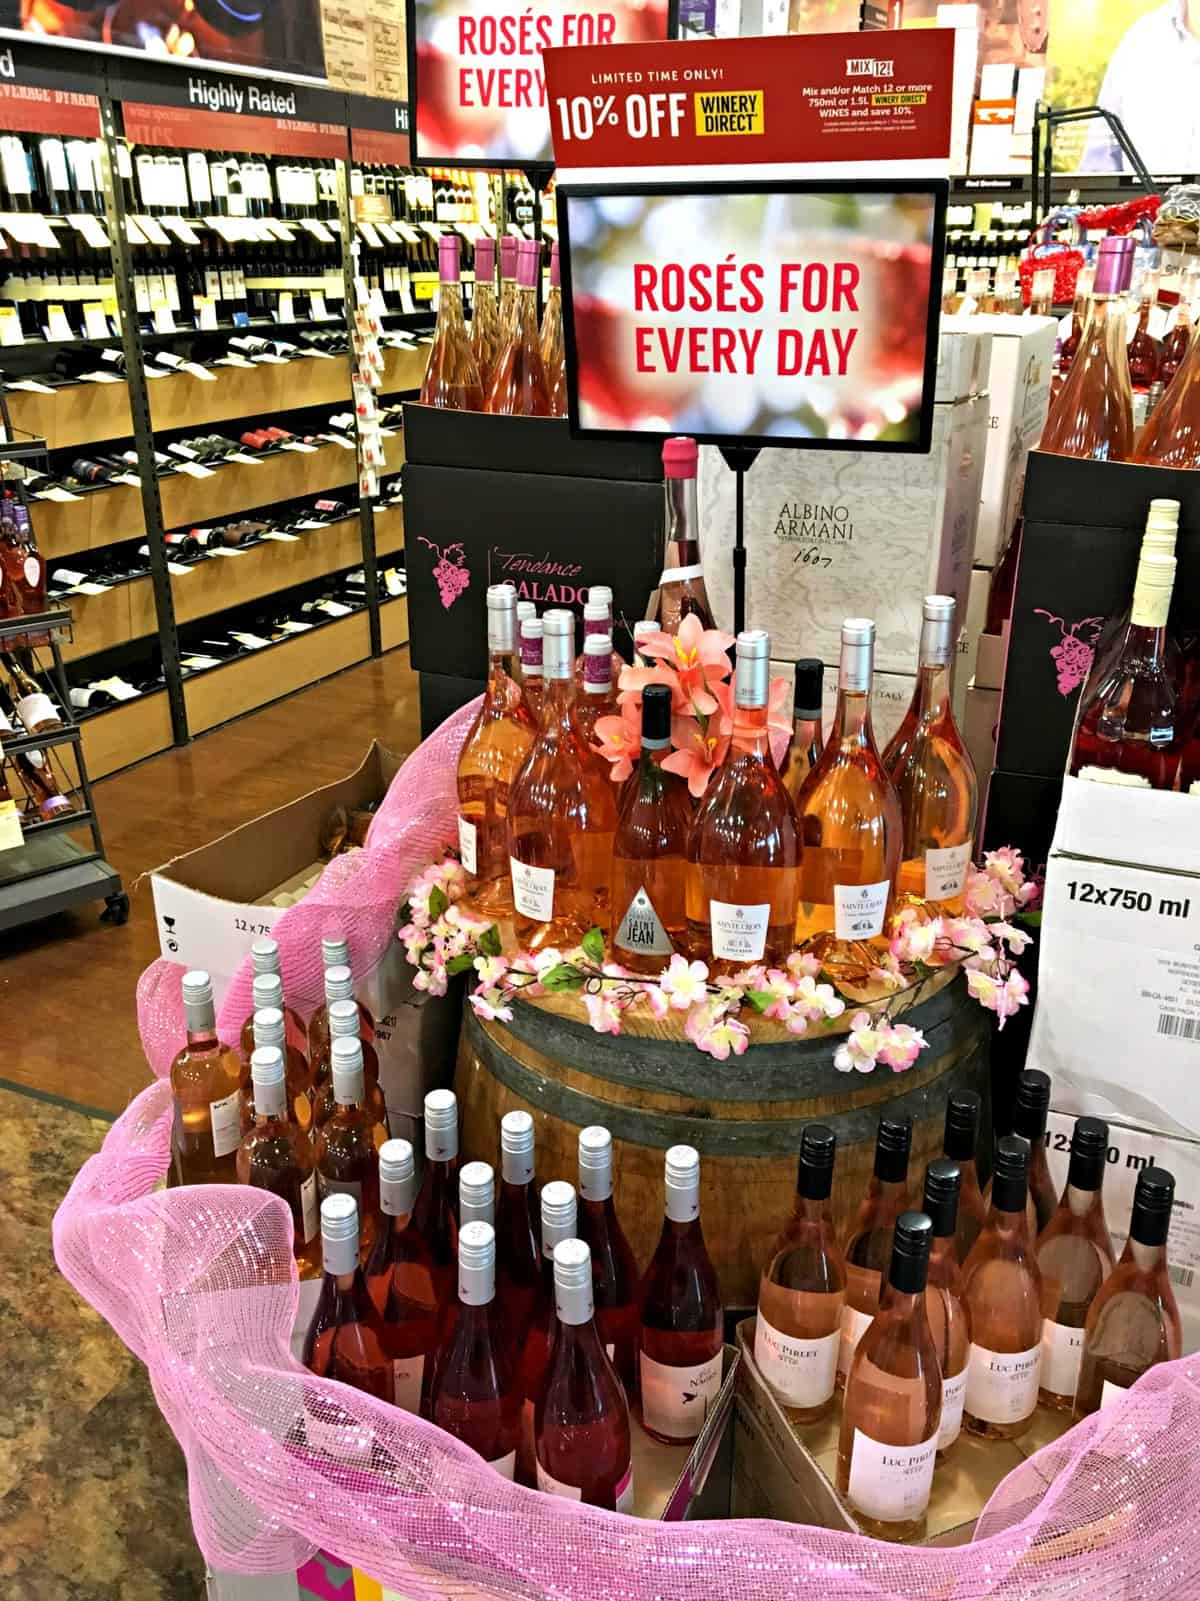 Total Wine is your one-stop shop for Rose, every day